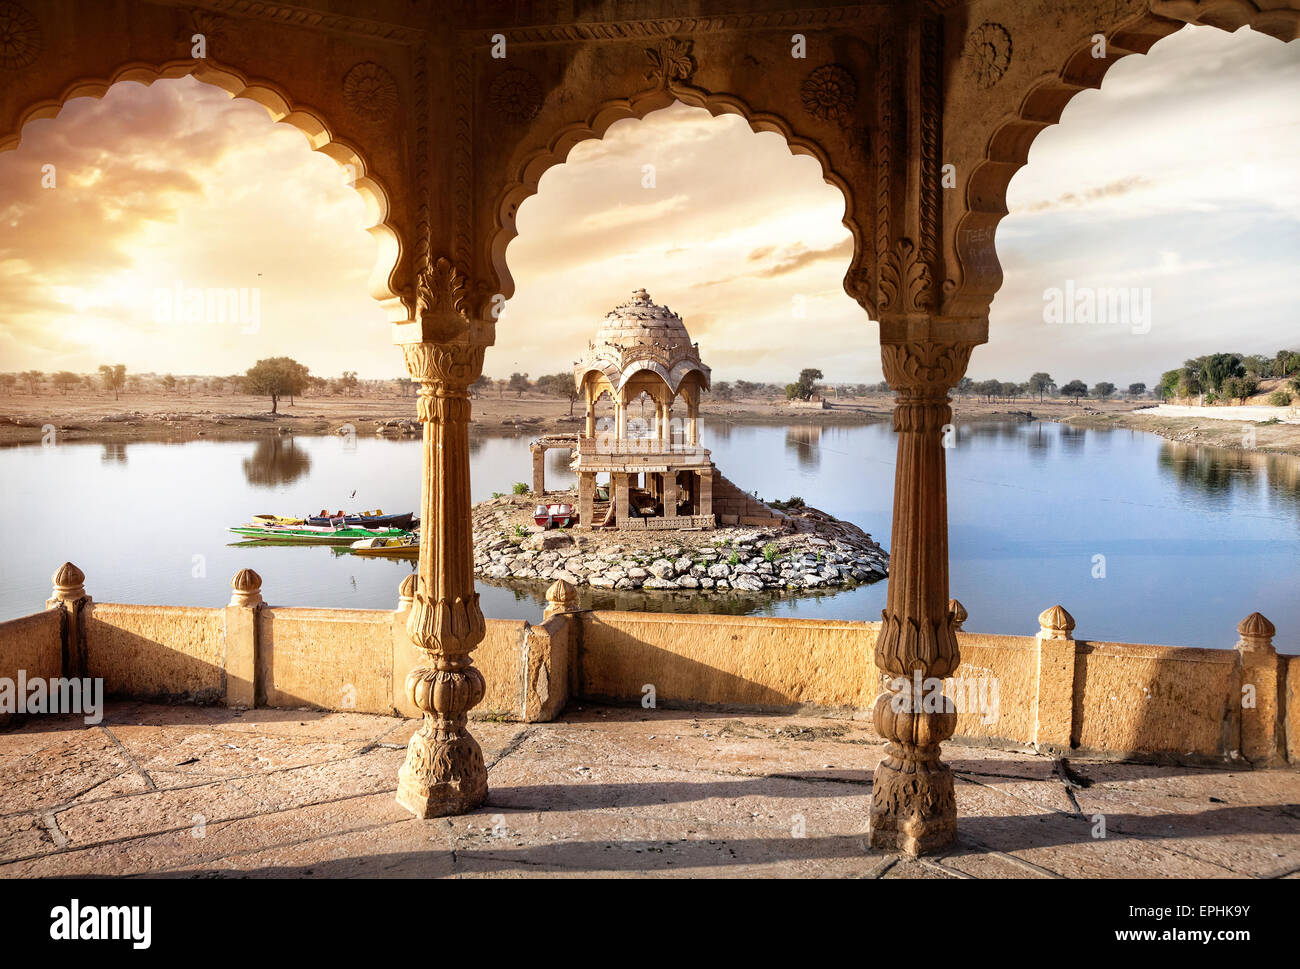 Arches and temple in Gadi Sagar lake at sunset sky in Jaisalmer, Rajasthan, India - Stock Image